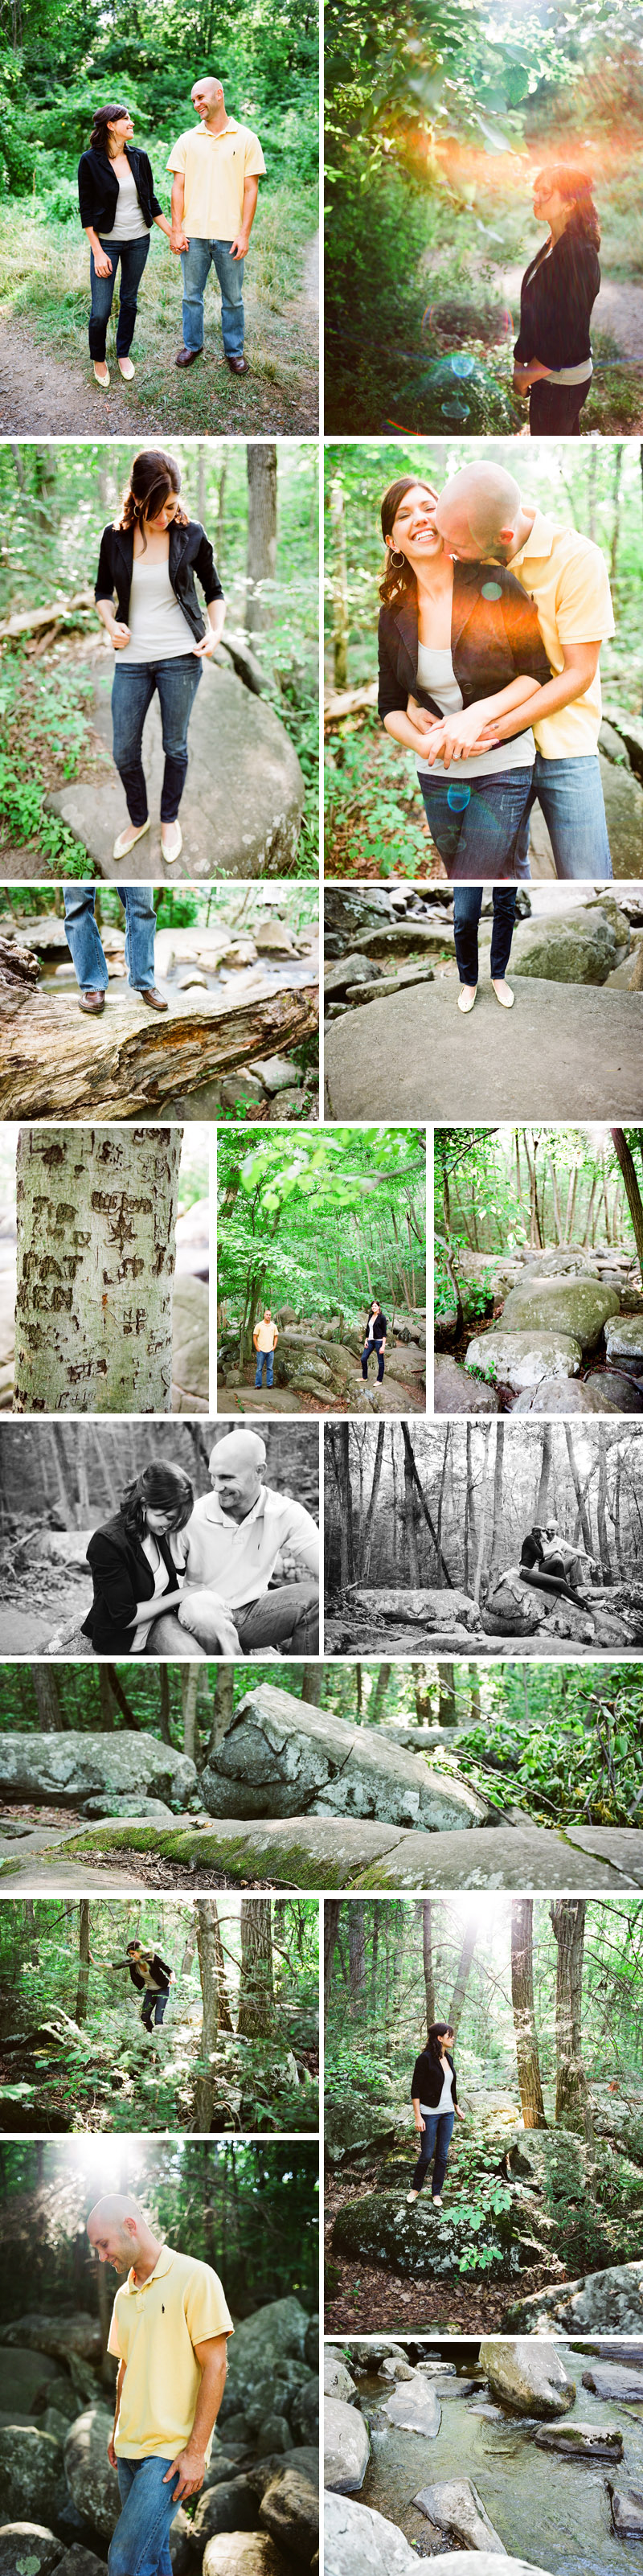 Erin & Matt's engagement session in french creek state park photographed by ash imagery